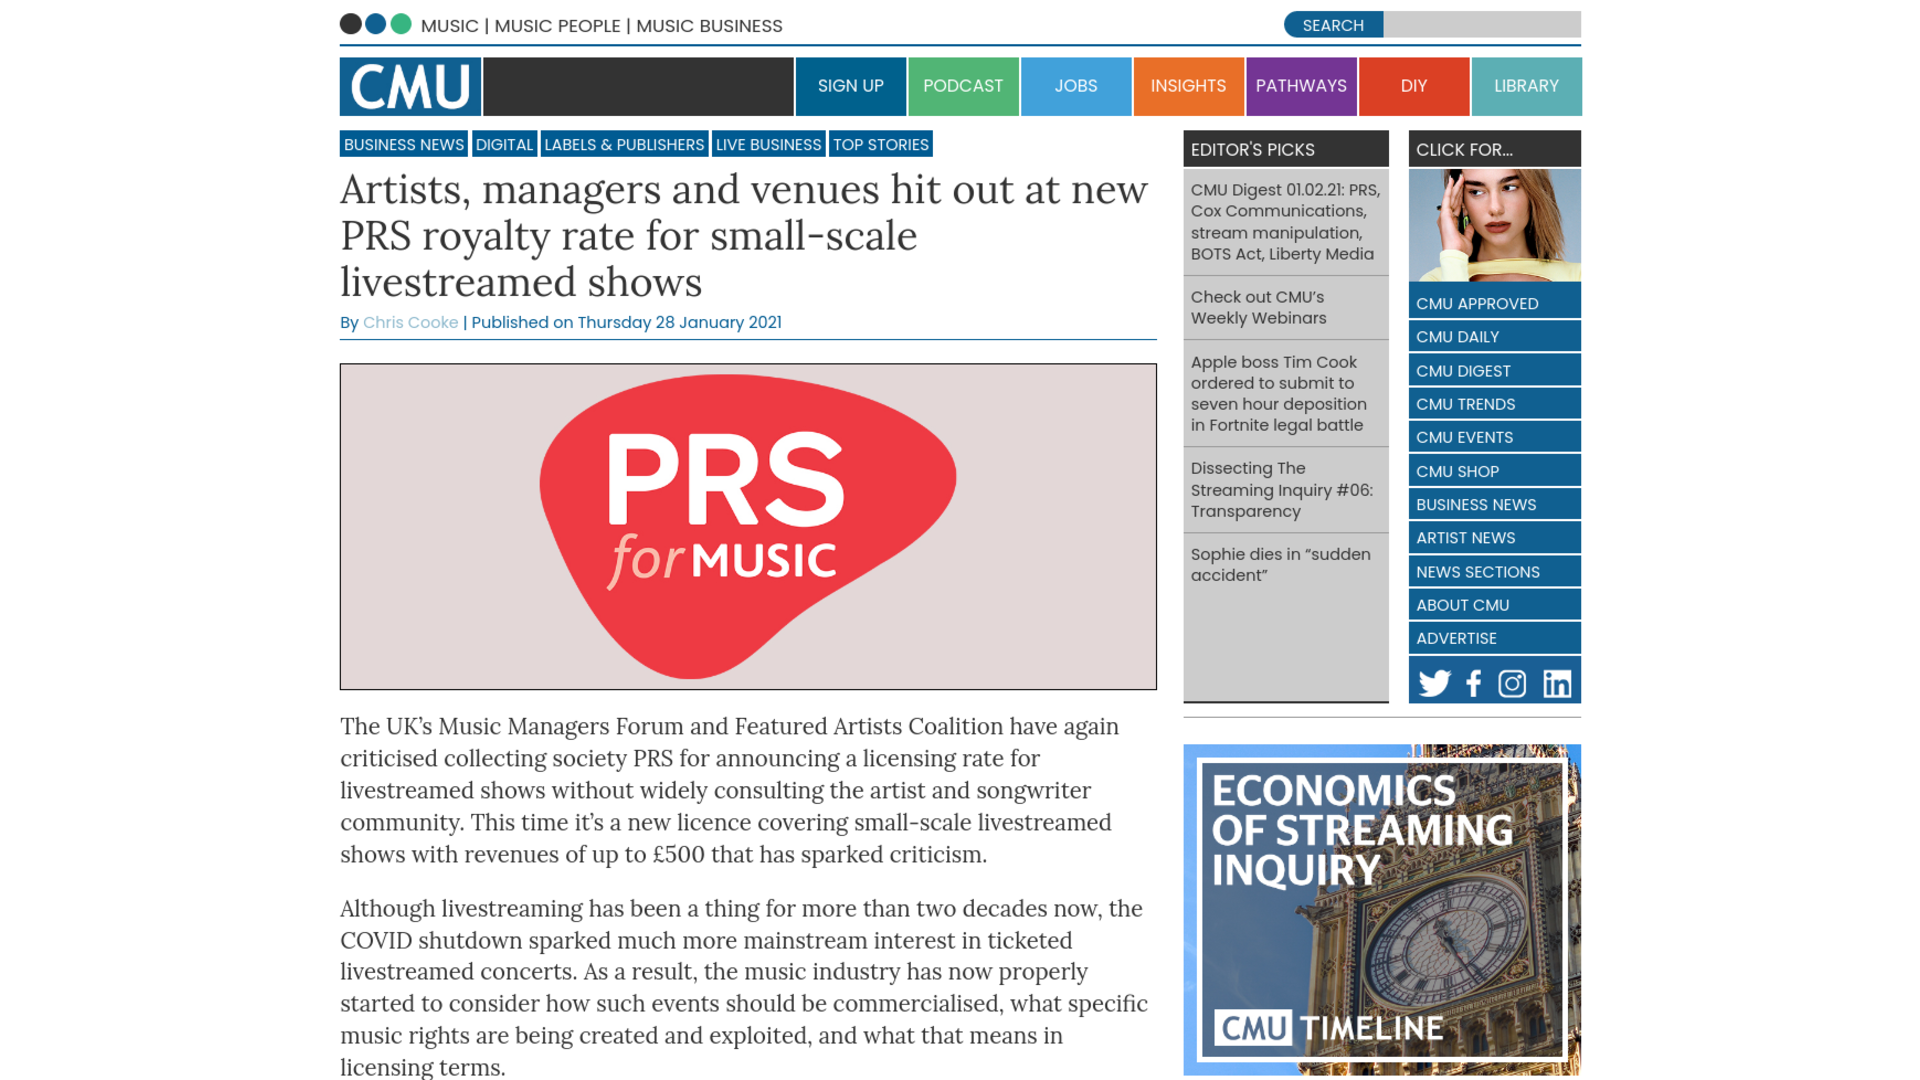 Fairness Rocks News Artists, managers and venues hit out at new PRS royalty rate for small-scale livestreamed shows